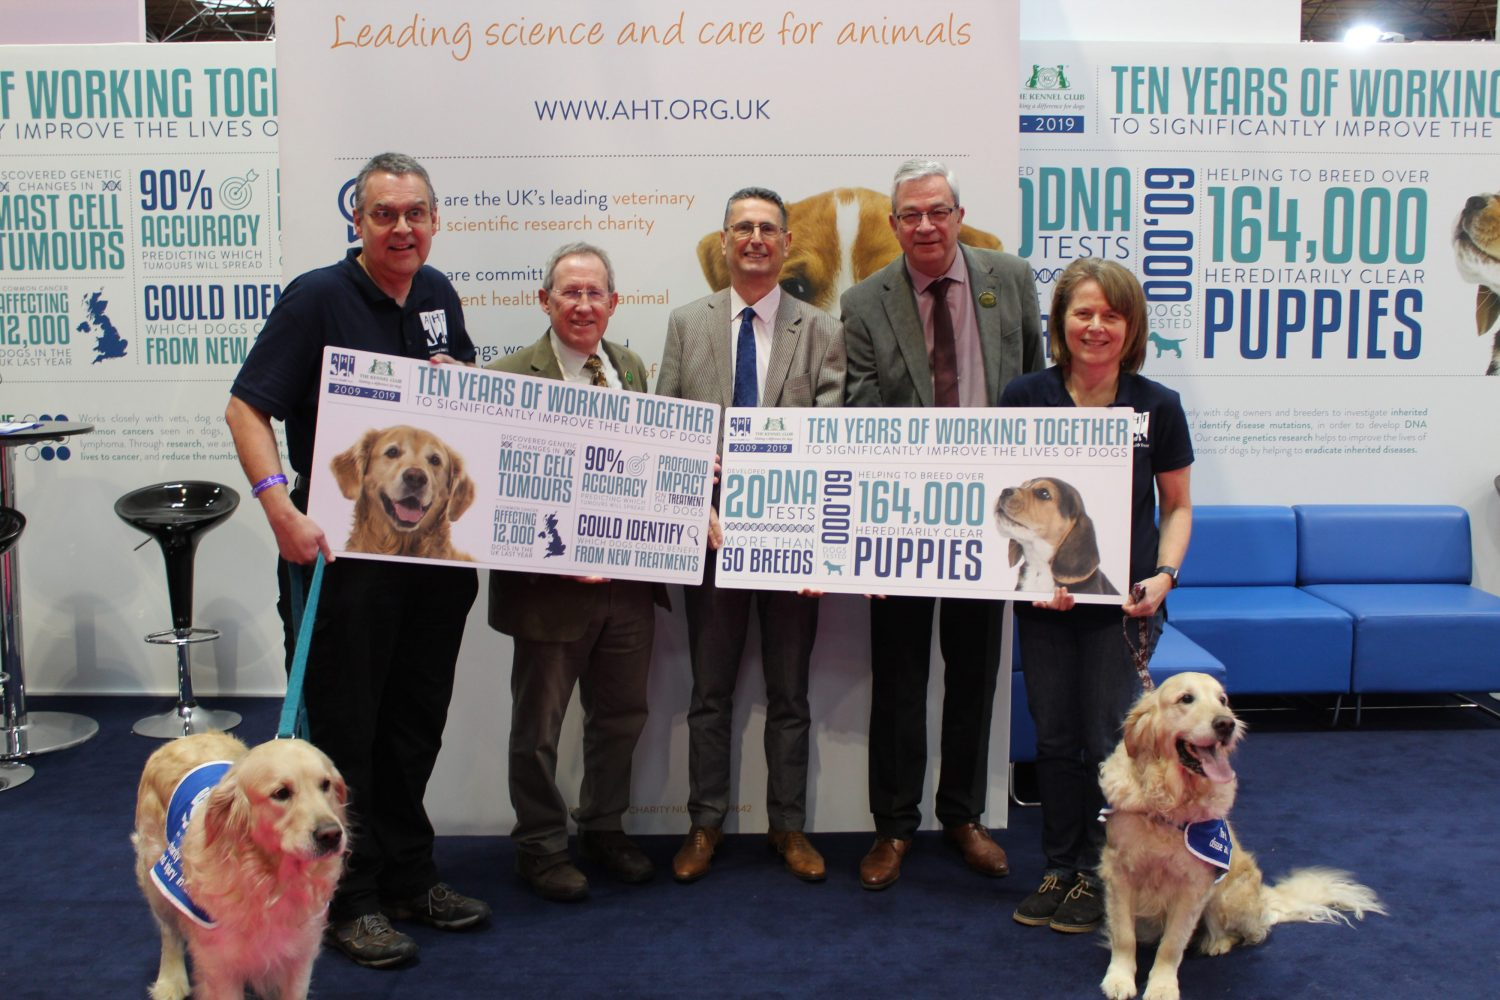 Celebrating 10 years improving dogs' lives